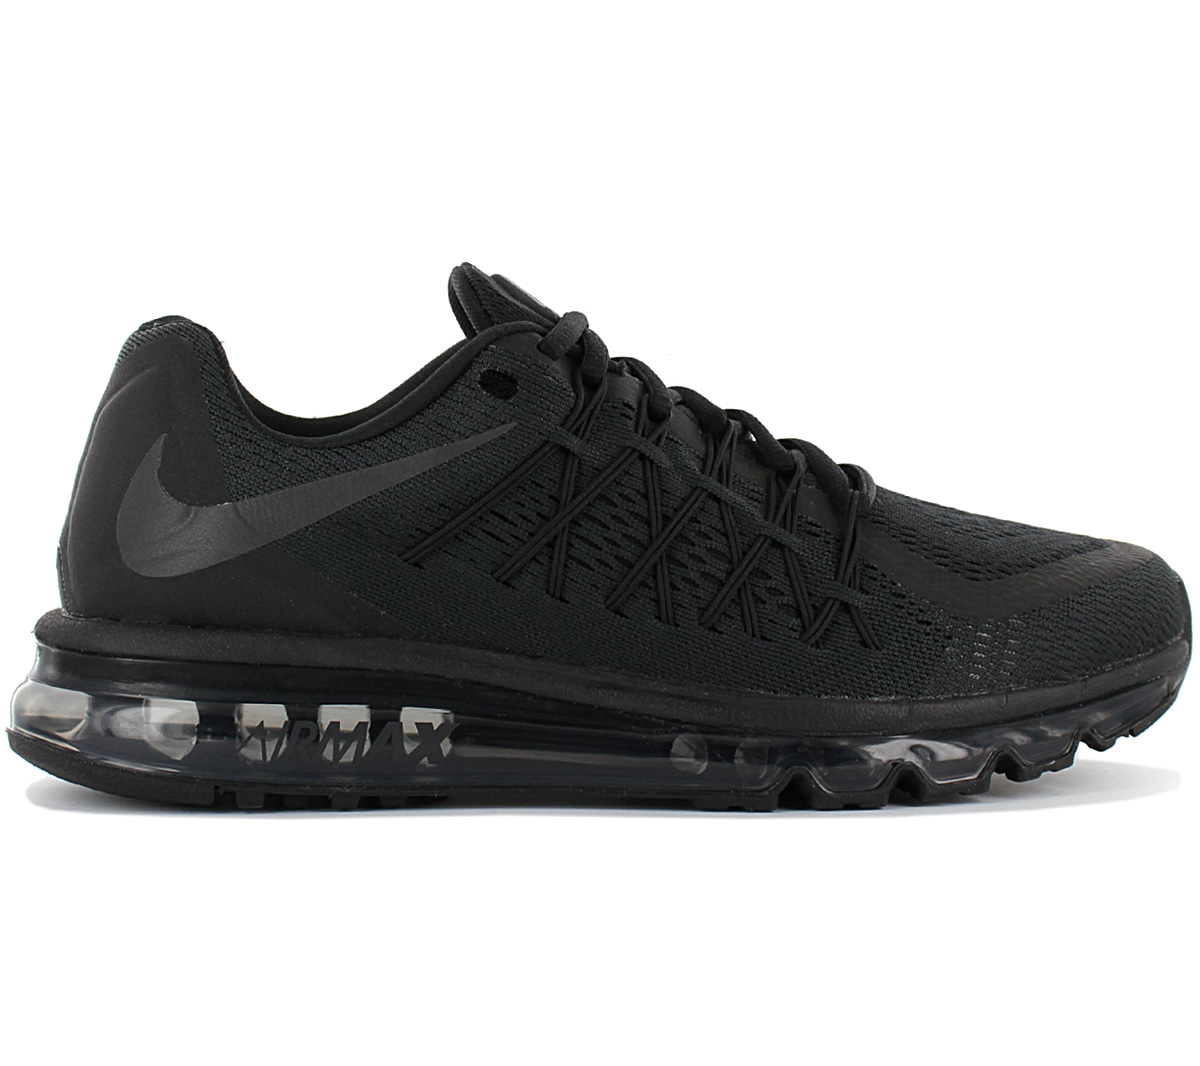 Details about Nike air max 2015 Men's Sneaker BQ7548 002 Black Shoes Sneakers Trainers